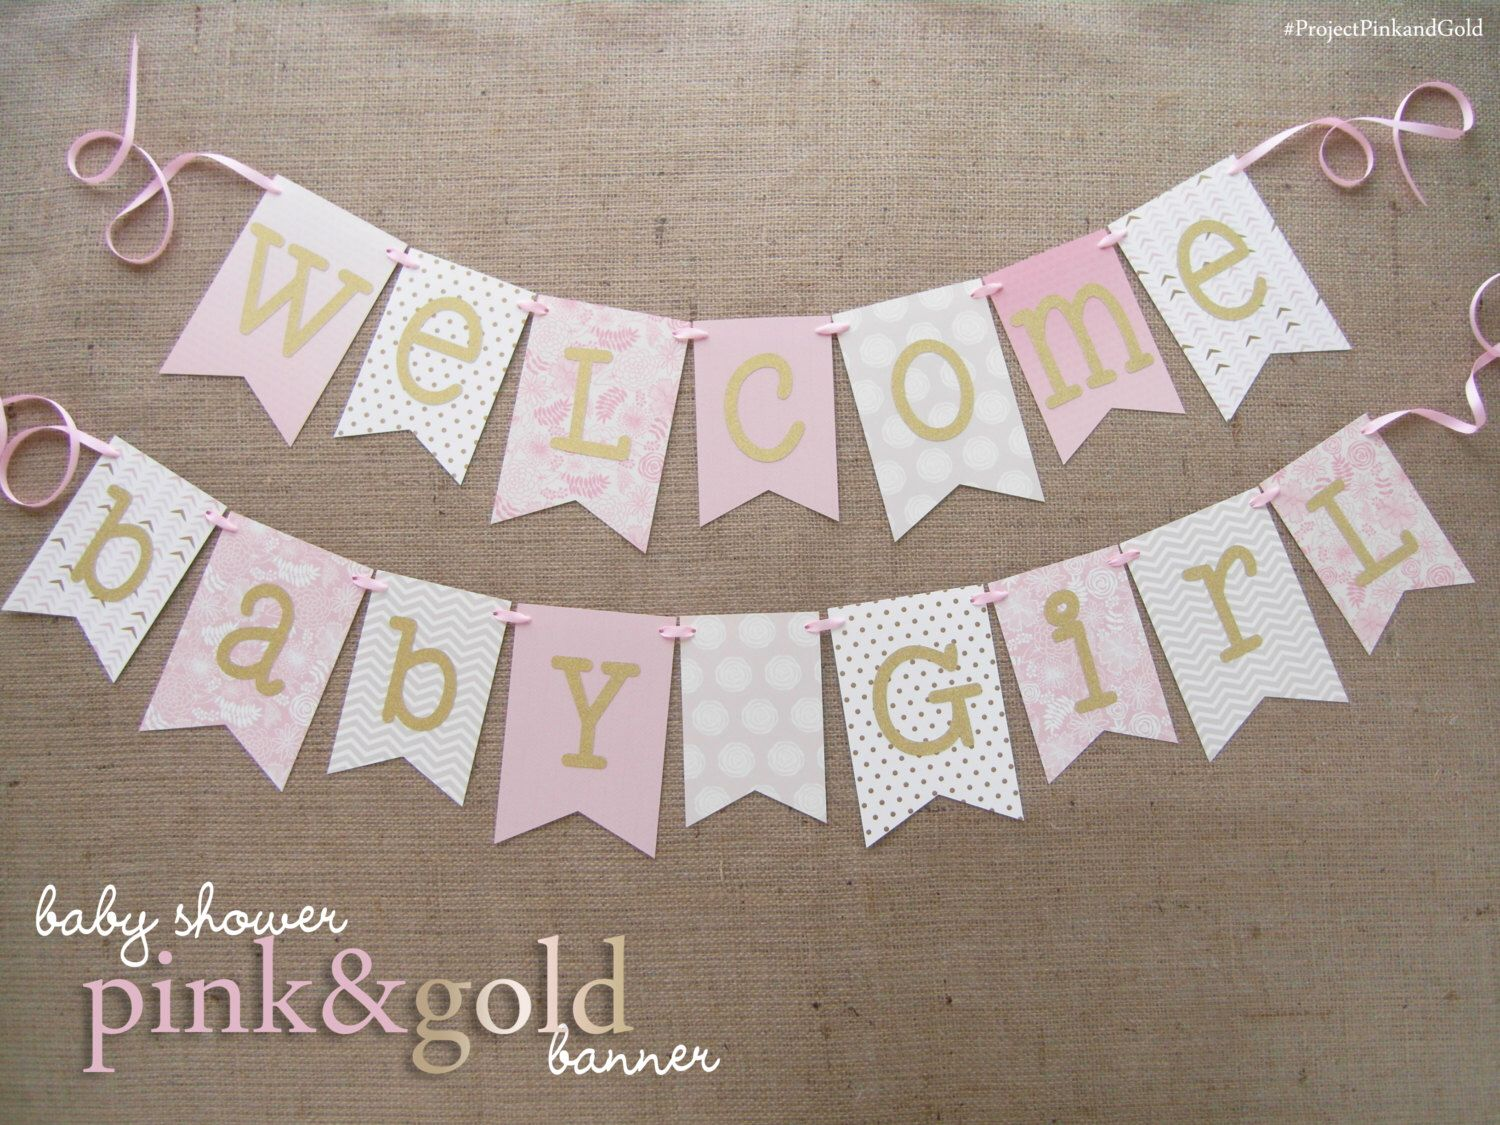 pink and gold baby shower banner welcome baby girl by jacqscraftycorner on etsy httpswwwetsycomlisting233786286pink and gold baby shower banner